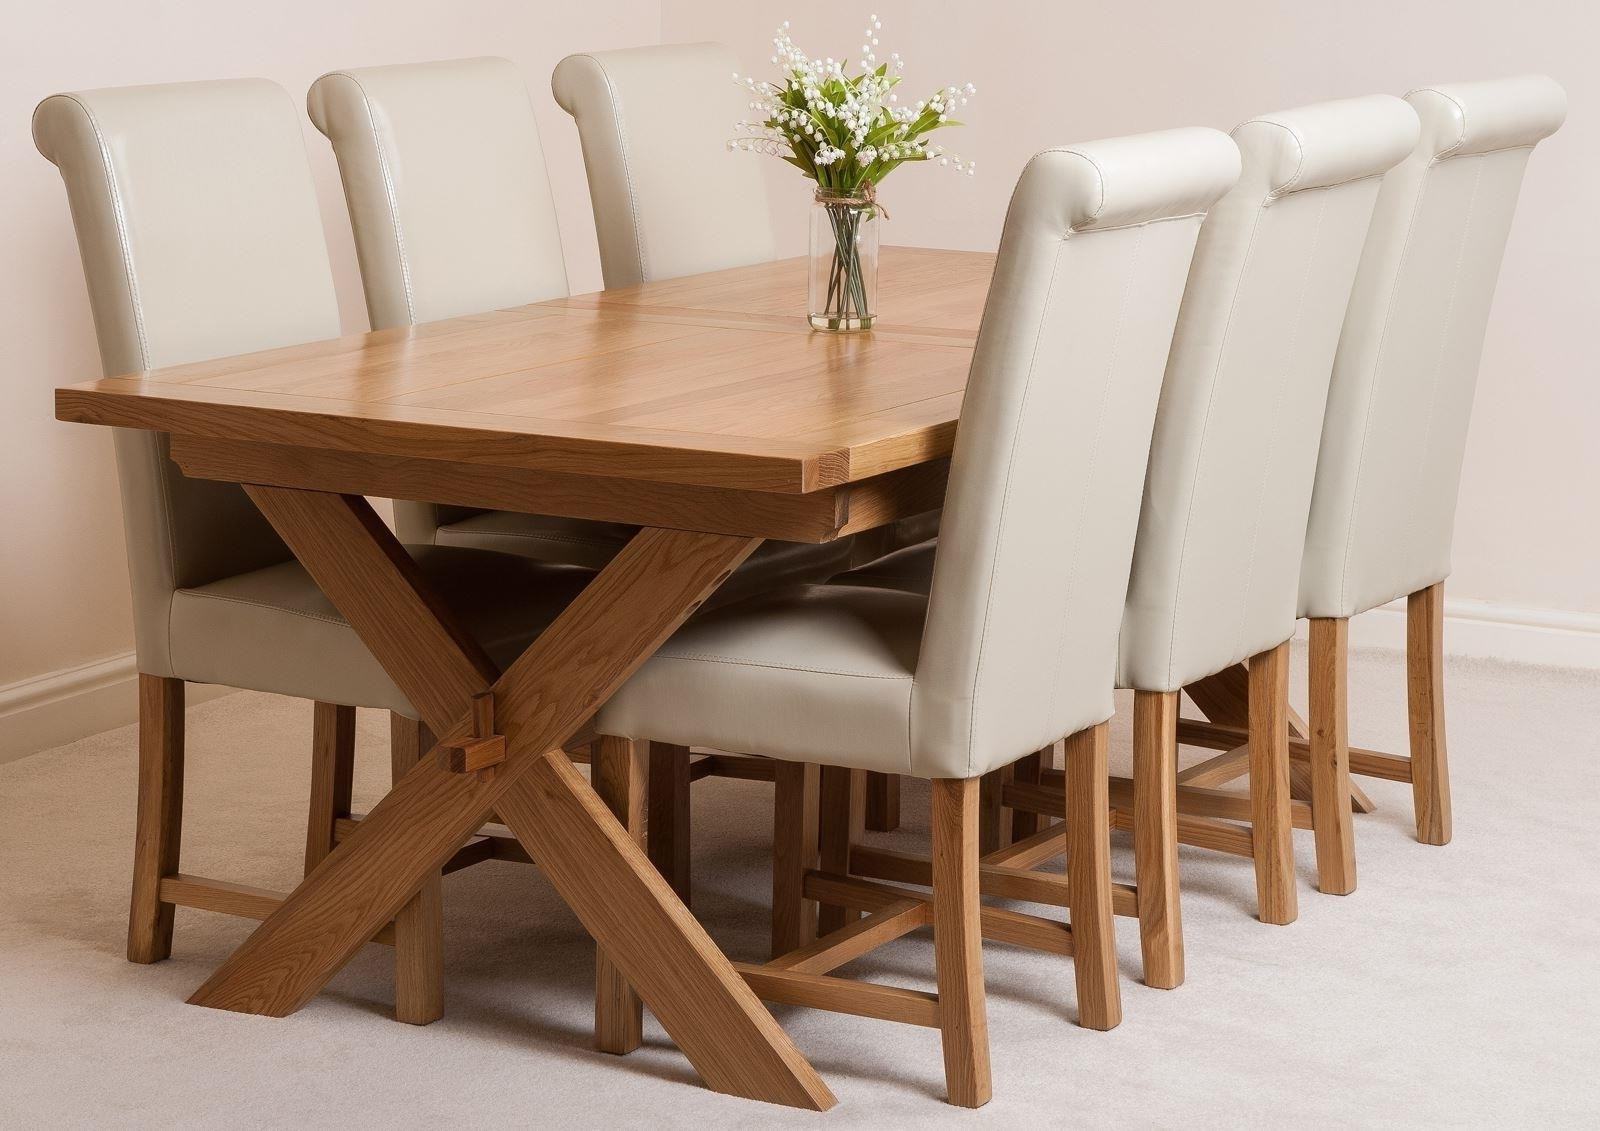 Widely Used Cheap Extendable Dining Tables Inside Vermont Dining Set With 6 Ivory Chairs (View 4 of 25)